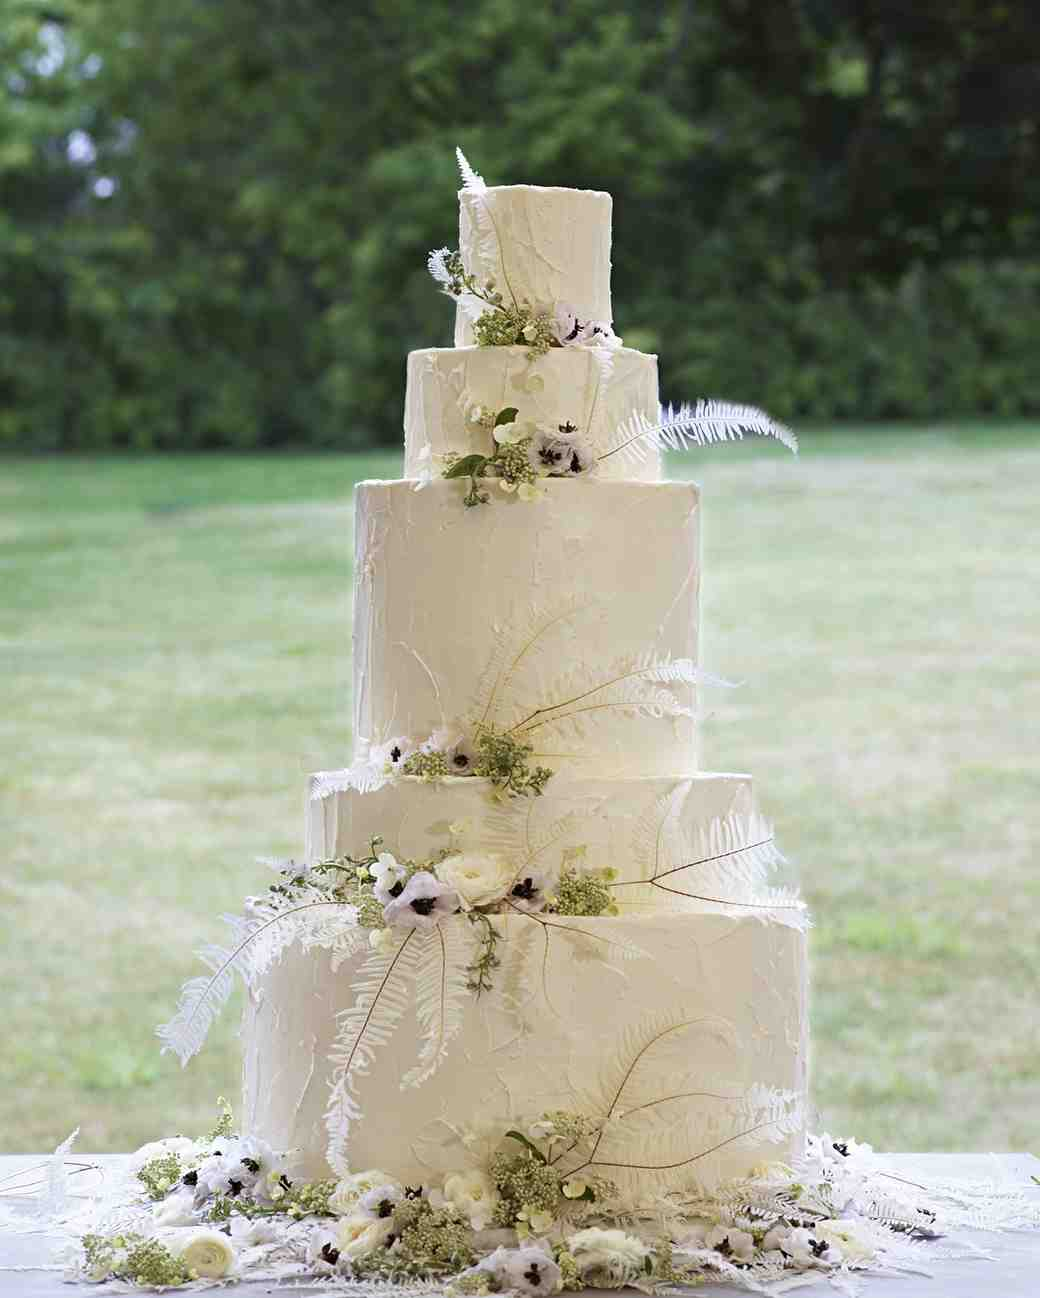 joyann jeremy wedding cake